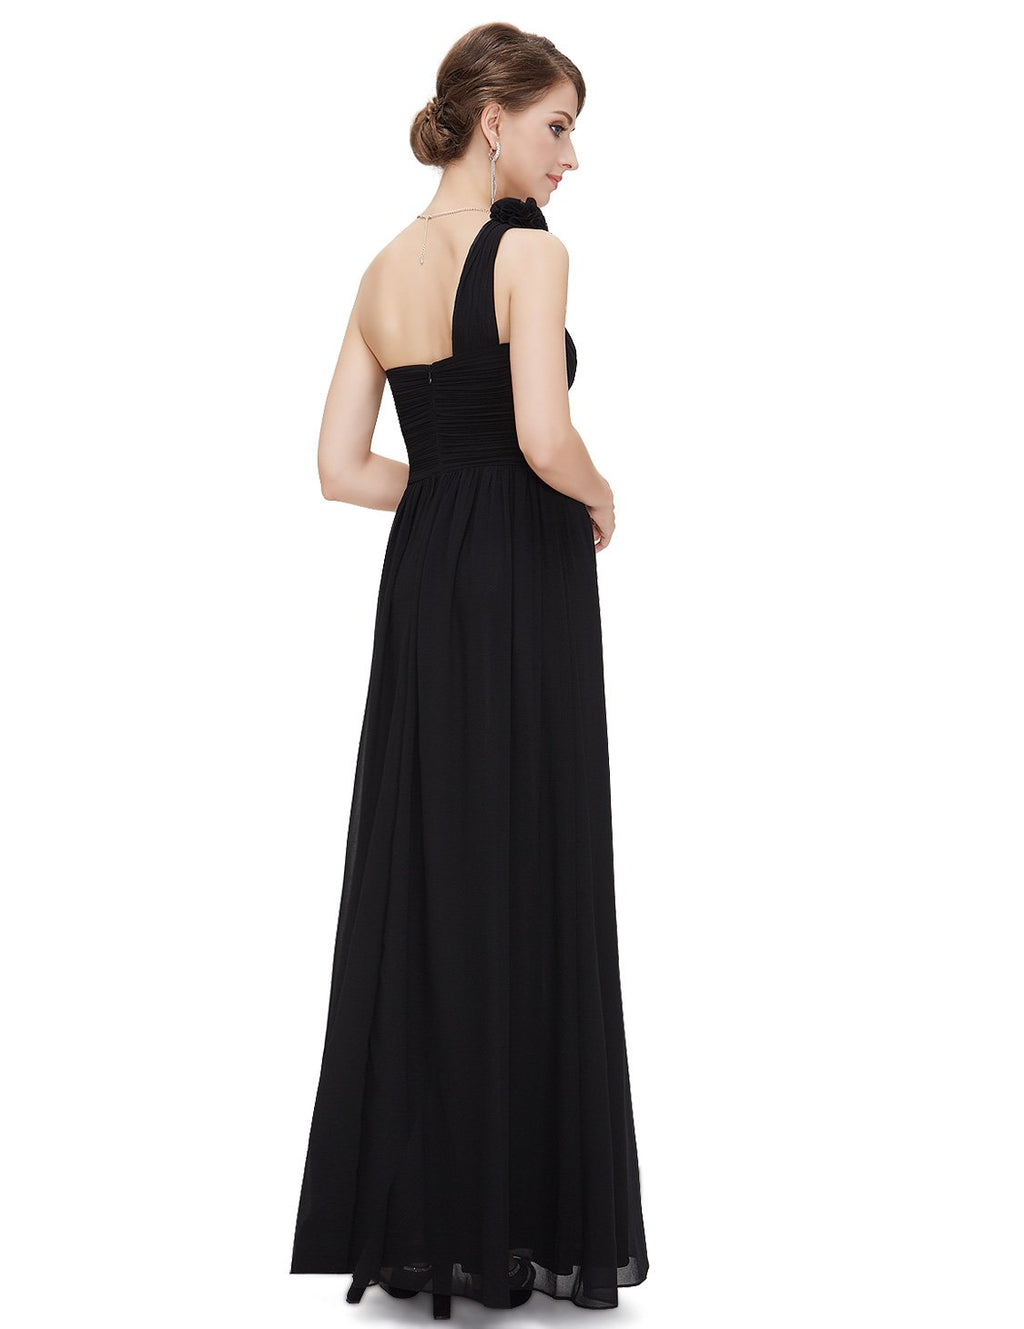 Floral Shoulder One Shoulder Evening Dress Black